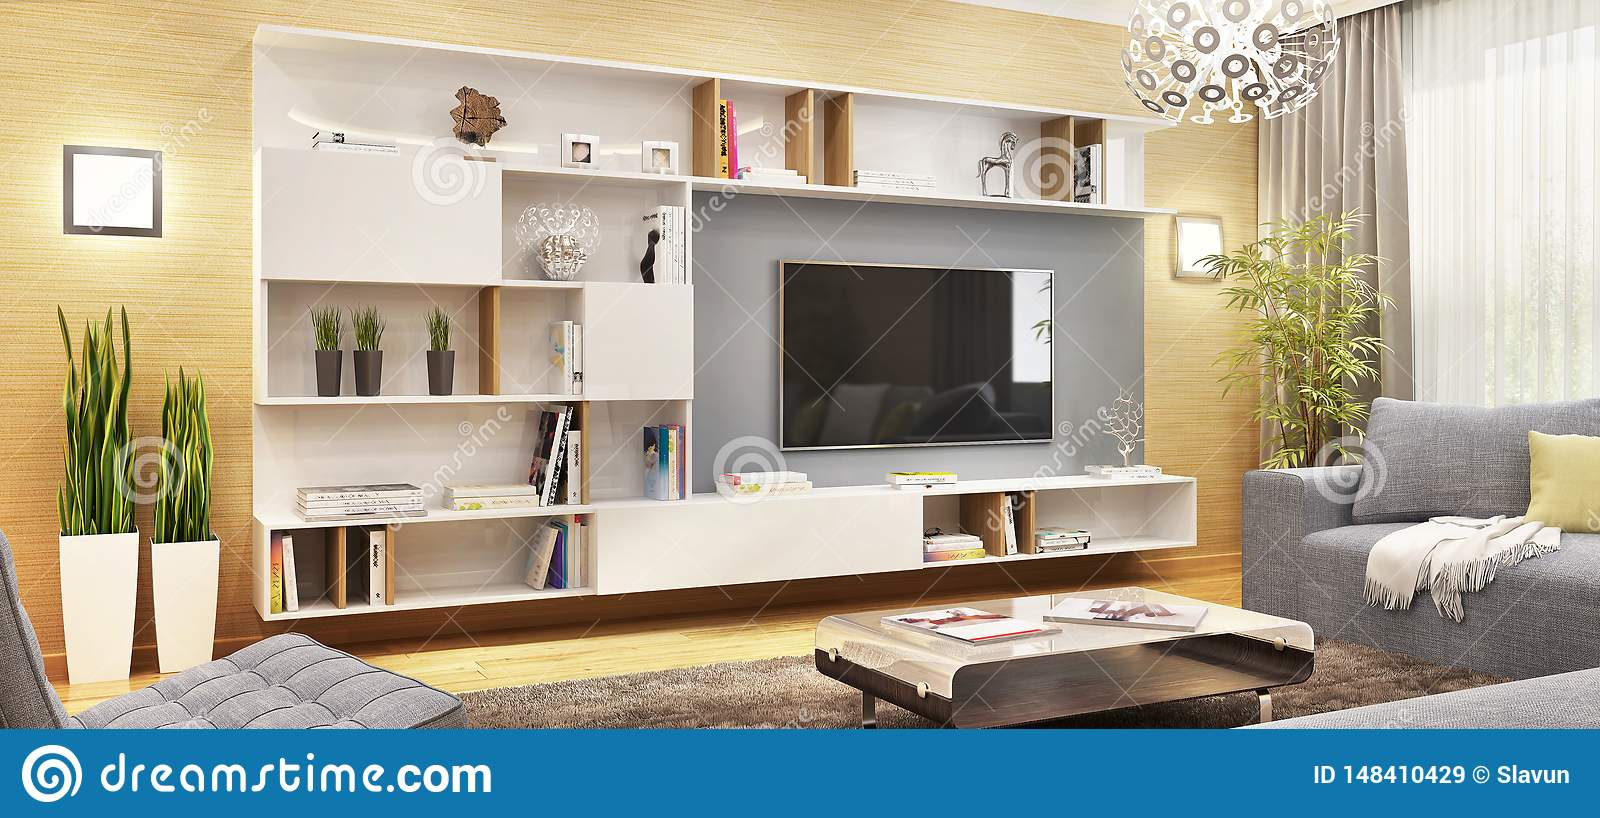 Modern Tv Cabinet In The Modern Living Room Stock Image - Image of